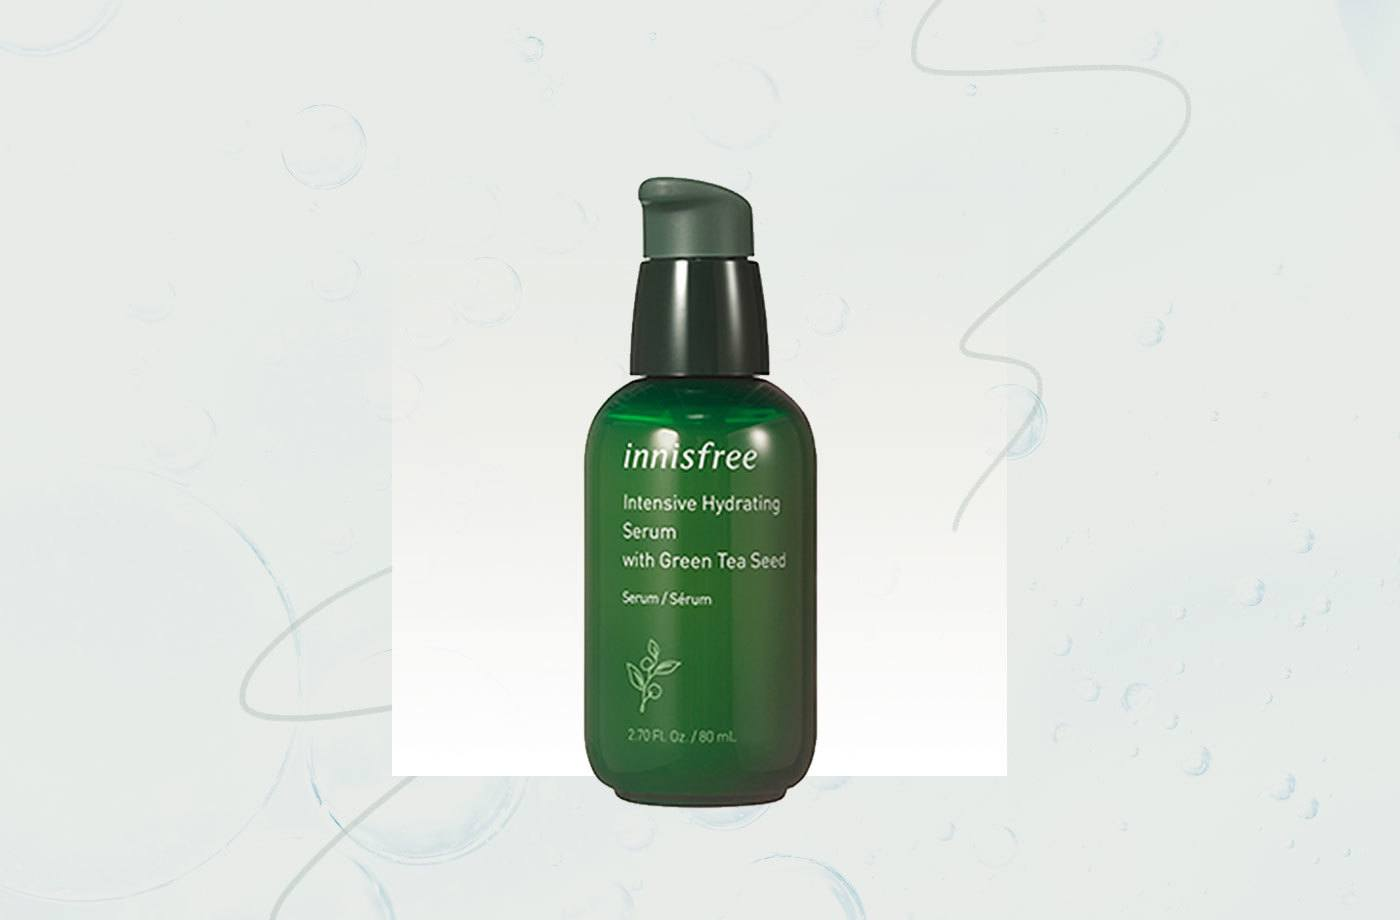 This buzzy K-beauty green tea serum sells 11 bottles per minute worldwide